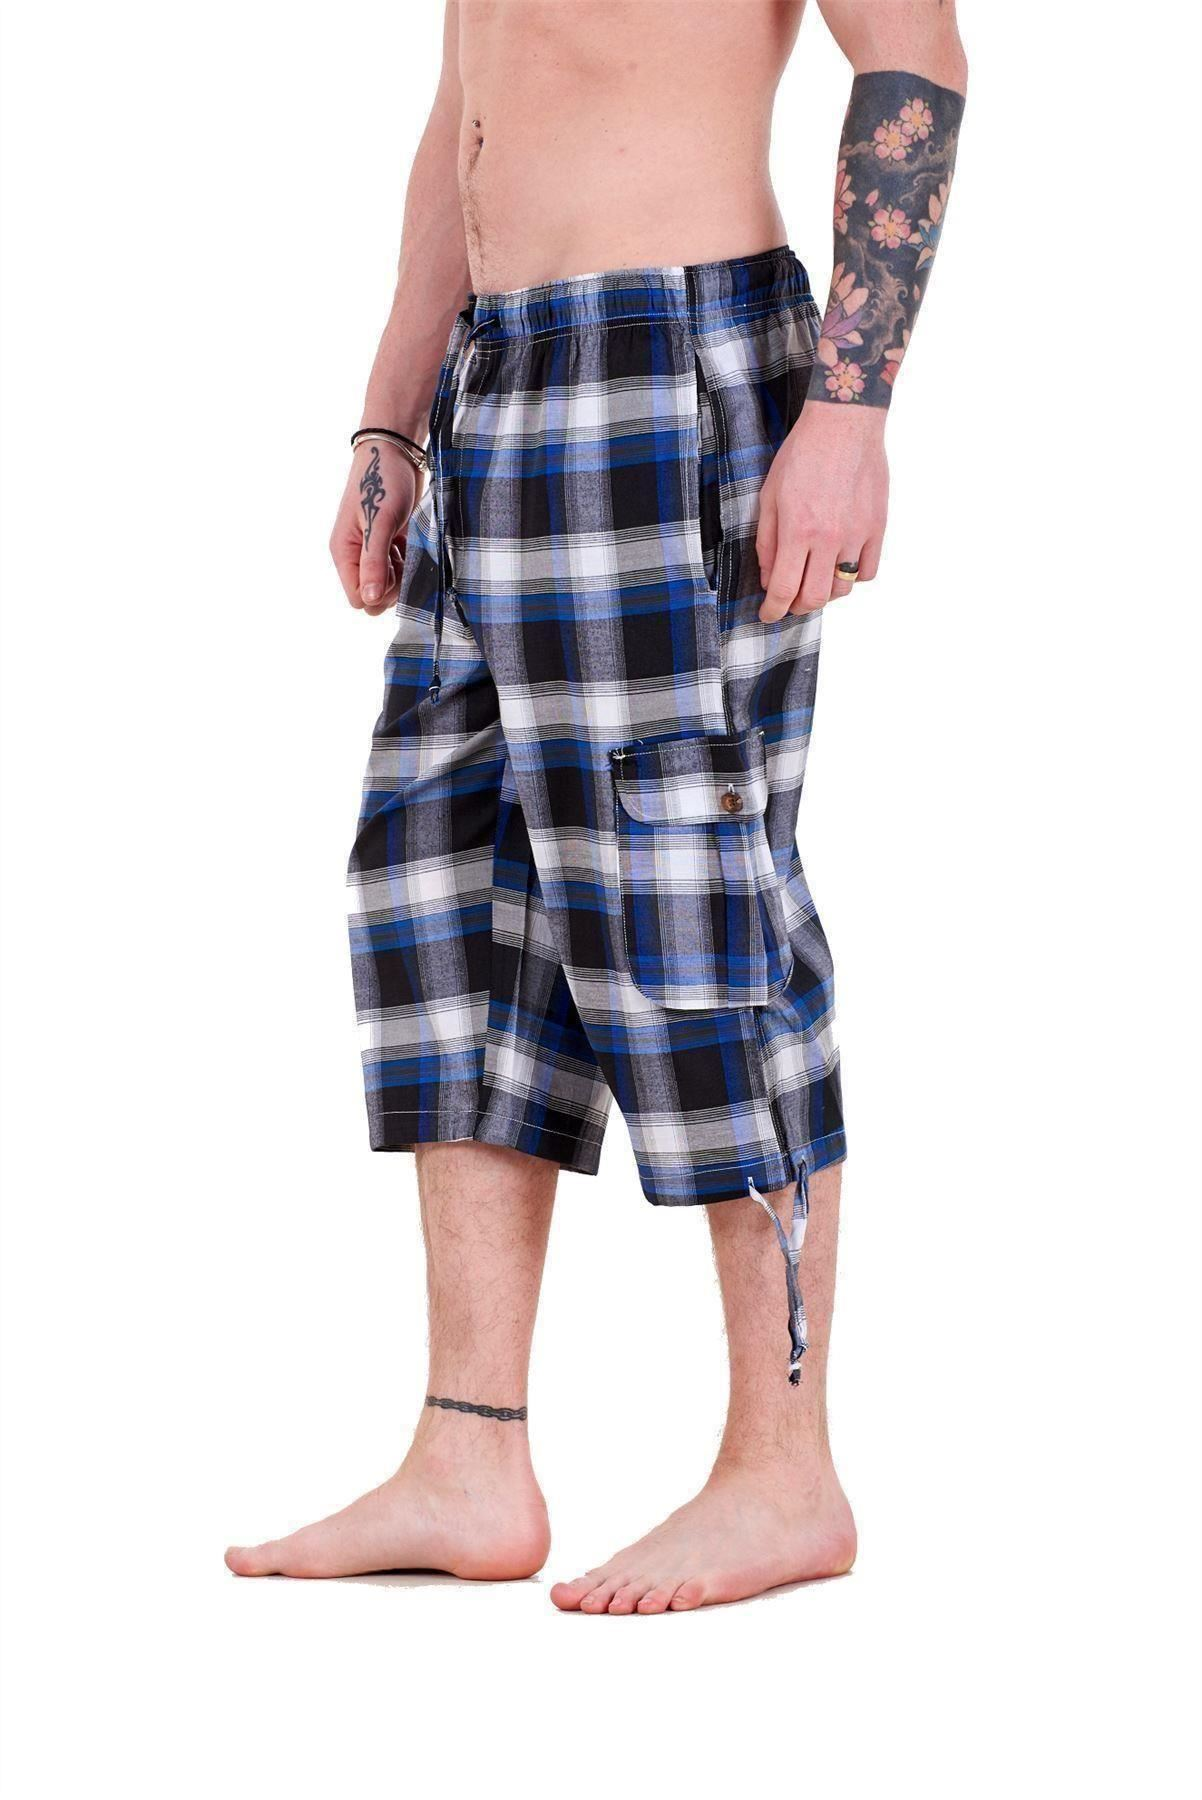 Mens-Check-Shorts-3-4-Length-by-Malay-Apparel-Cotton-Blend-Lounge-Casual-Wear thumbnail 11